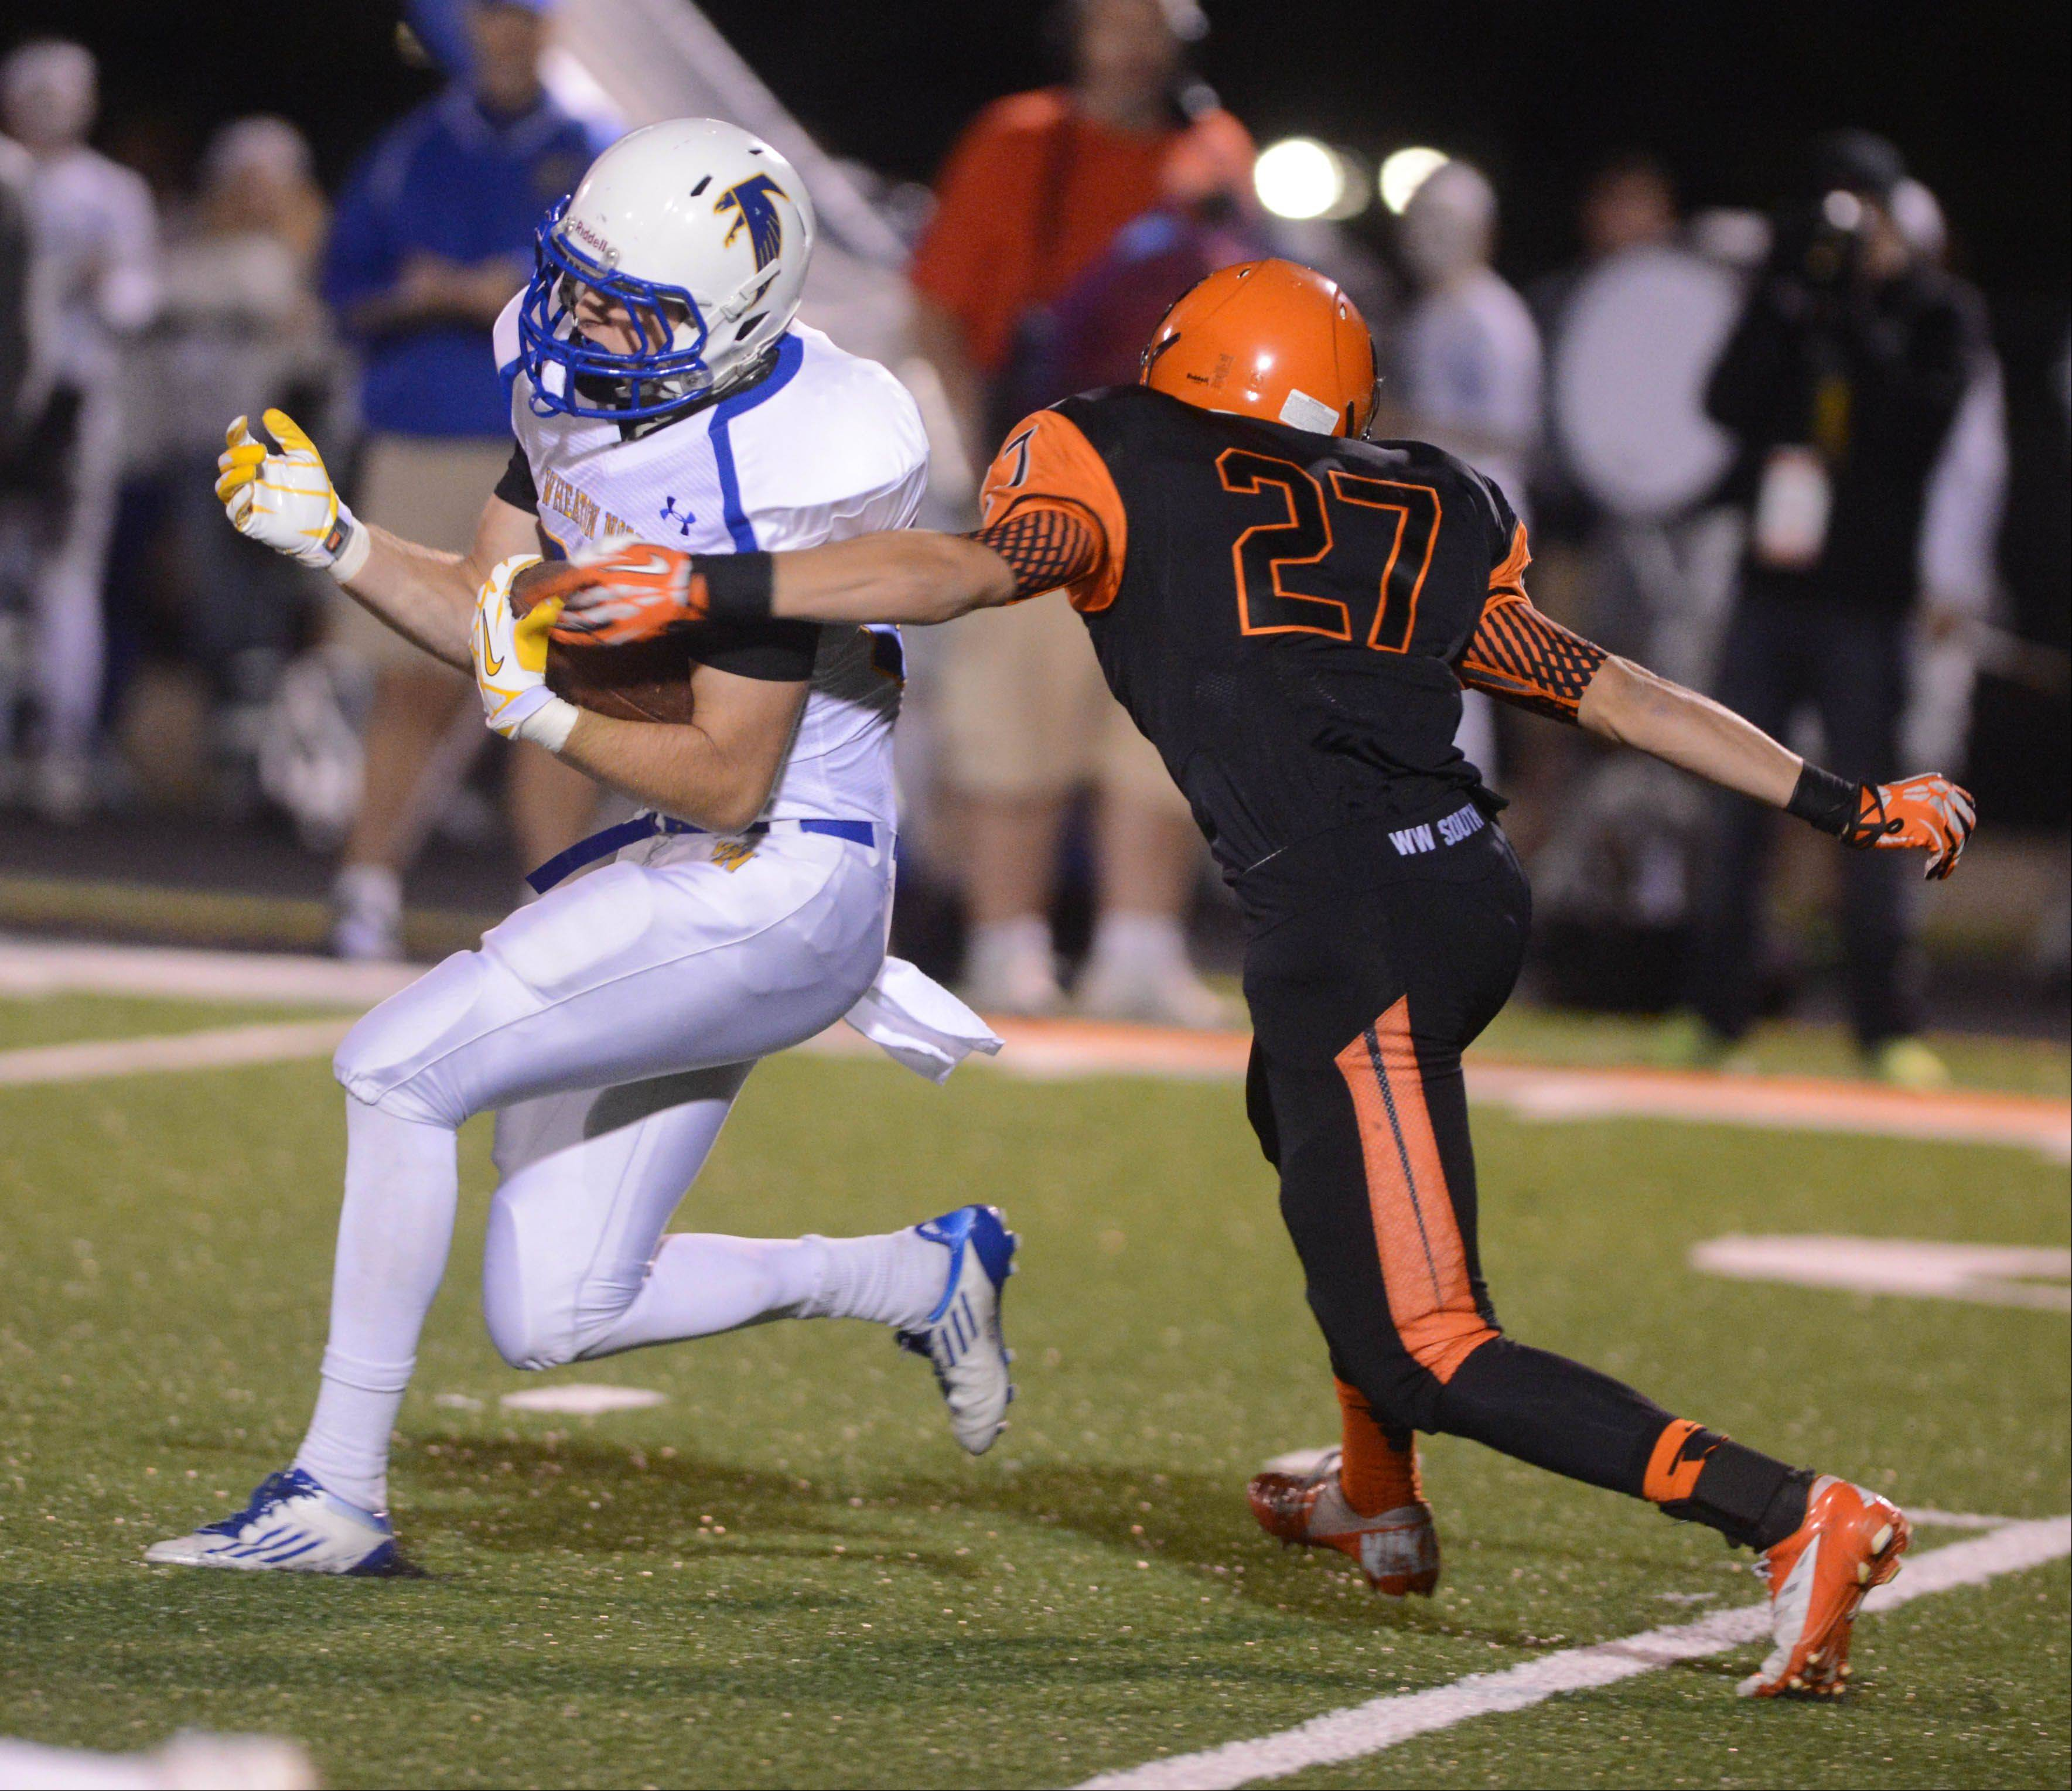 Matt Biegalski of Wheaton North is pulled down by Parker Fuson of Wheaton Warrenville South on Friday.